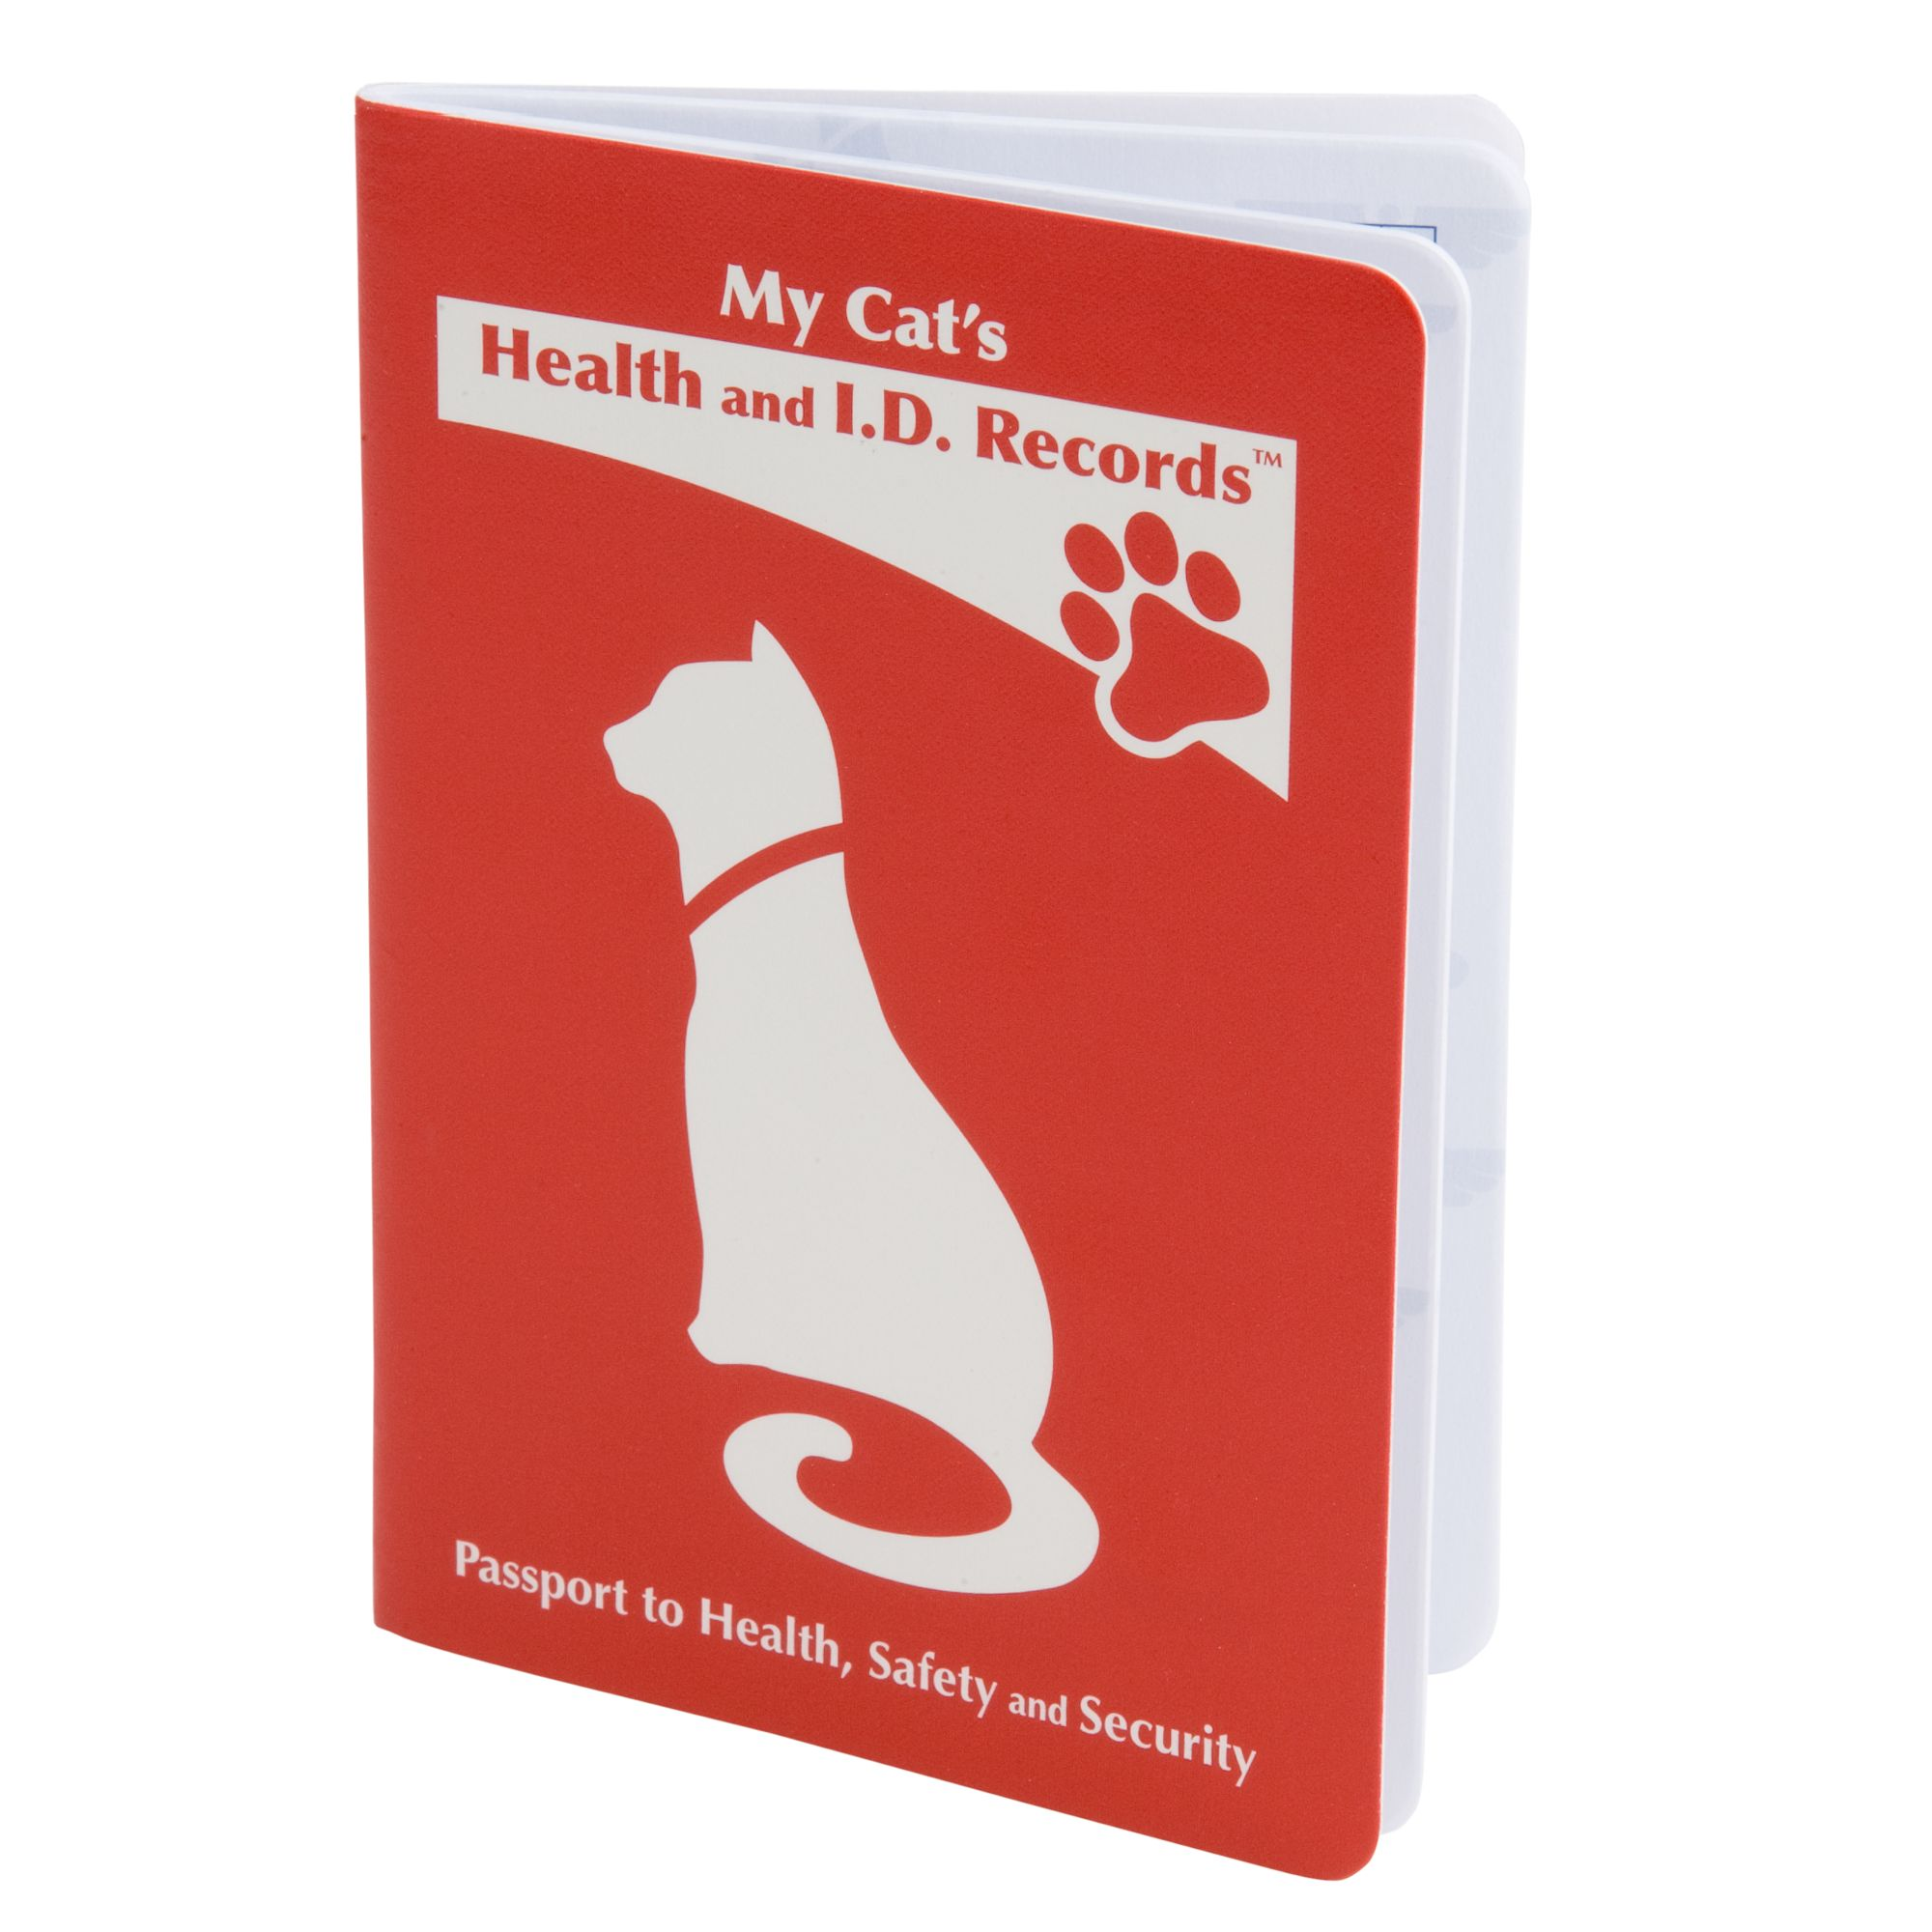 Mdi Health And I.d. Record Cat Passport Red